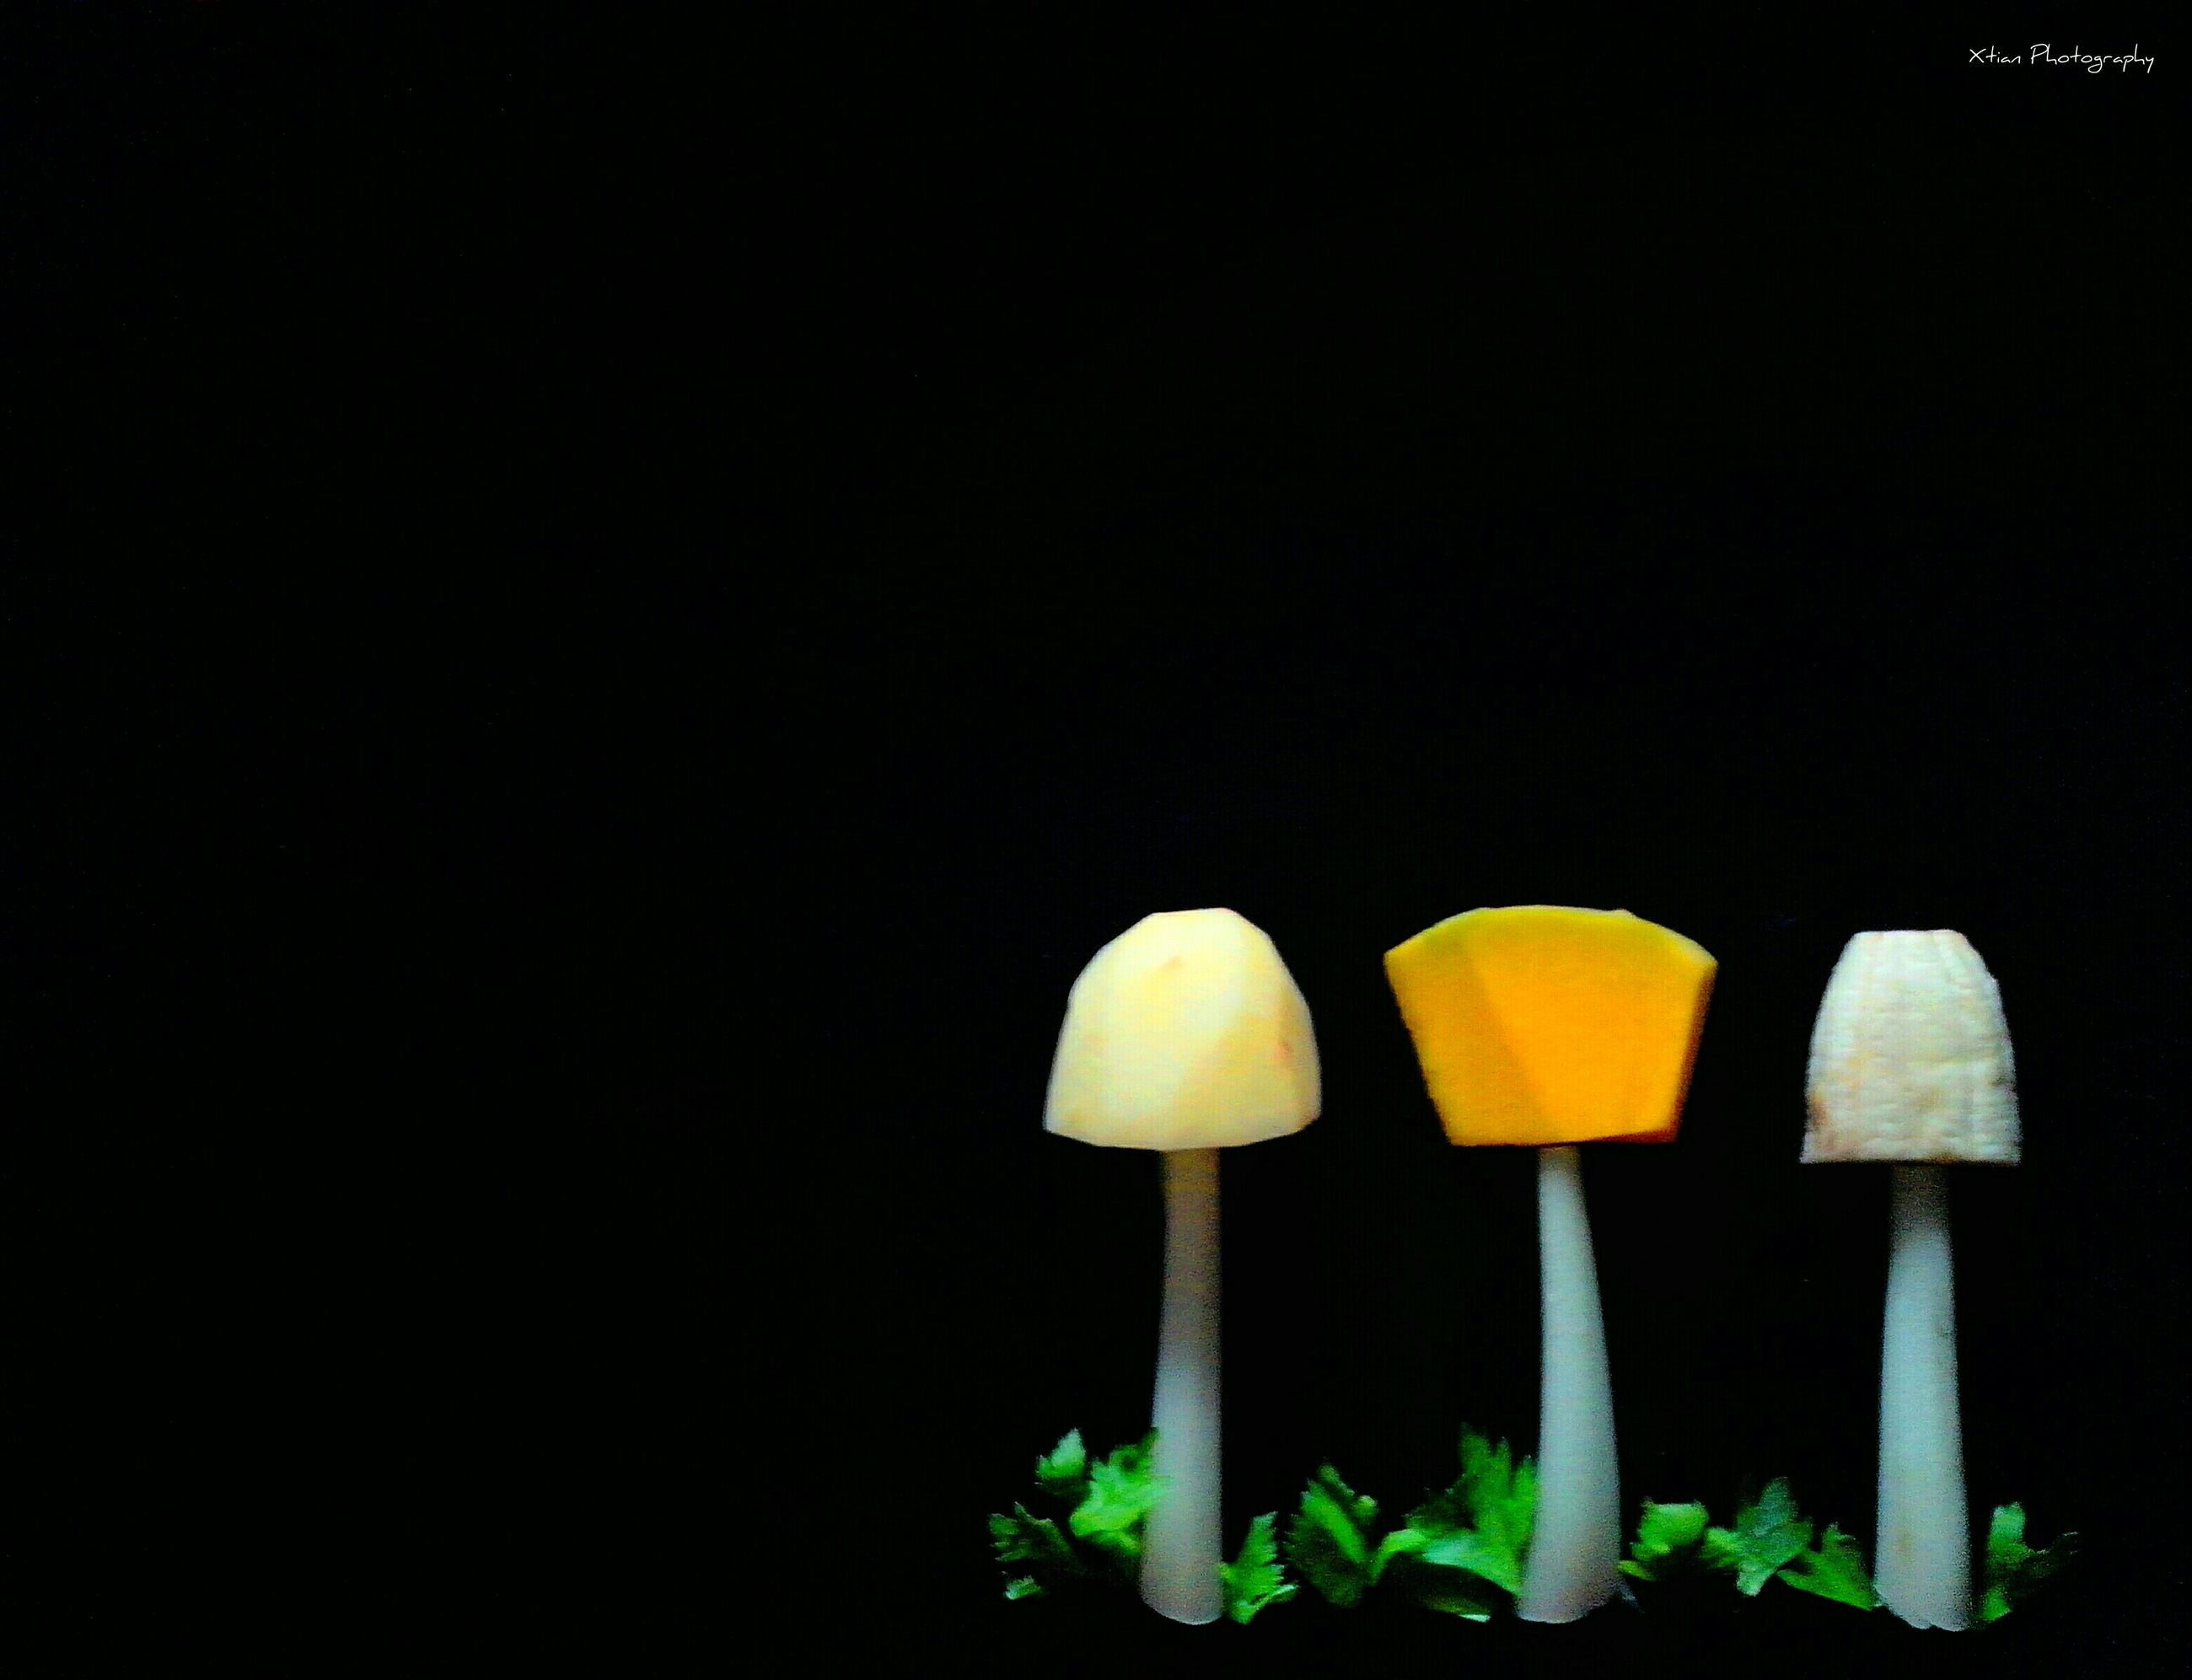 copy space, yellow, black background, studio shot, night, still life, illuminated, close-up, no people, lighting equipment, dark, clear sky, single object, wall - building feature, outdoors, shadow, table, nature, light - natural phenomenon